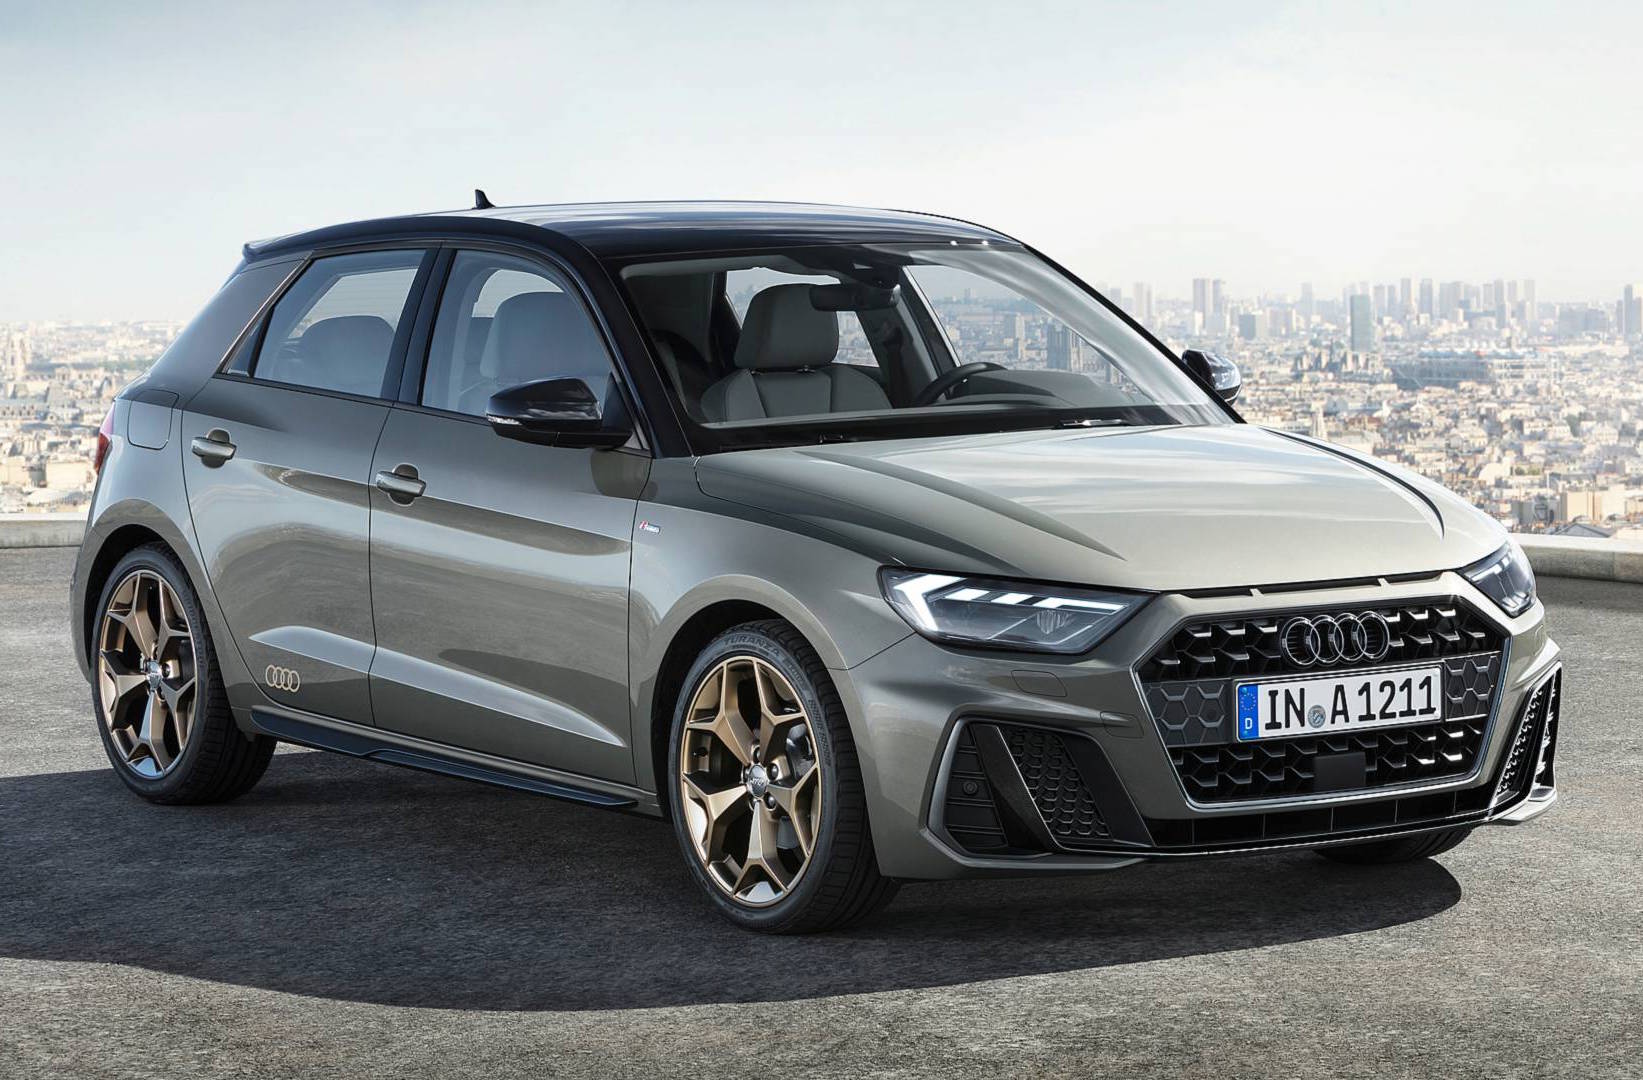 Used Audi A1 >> 2019 Audi A1 Sportback revealed; awesome design, jumps to MQB platform | PerformanceDrive